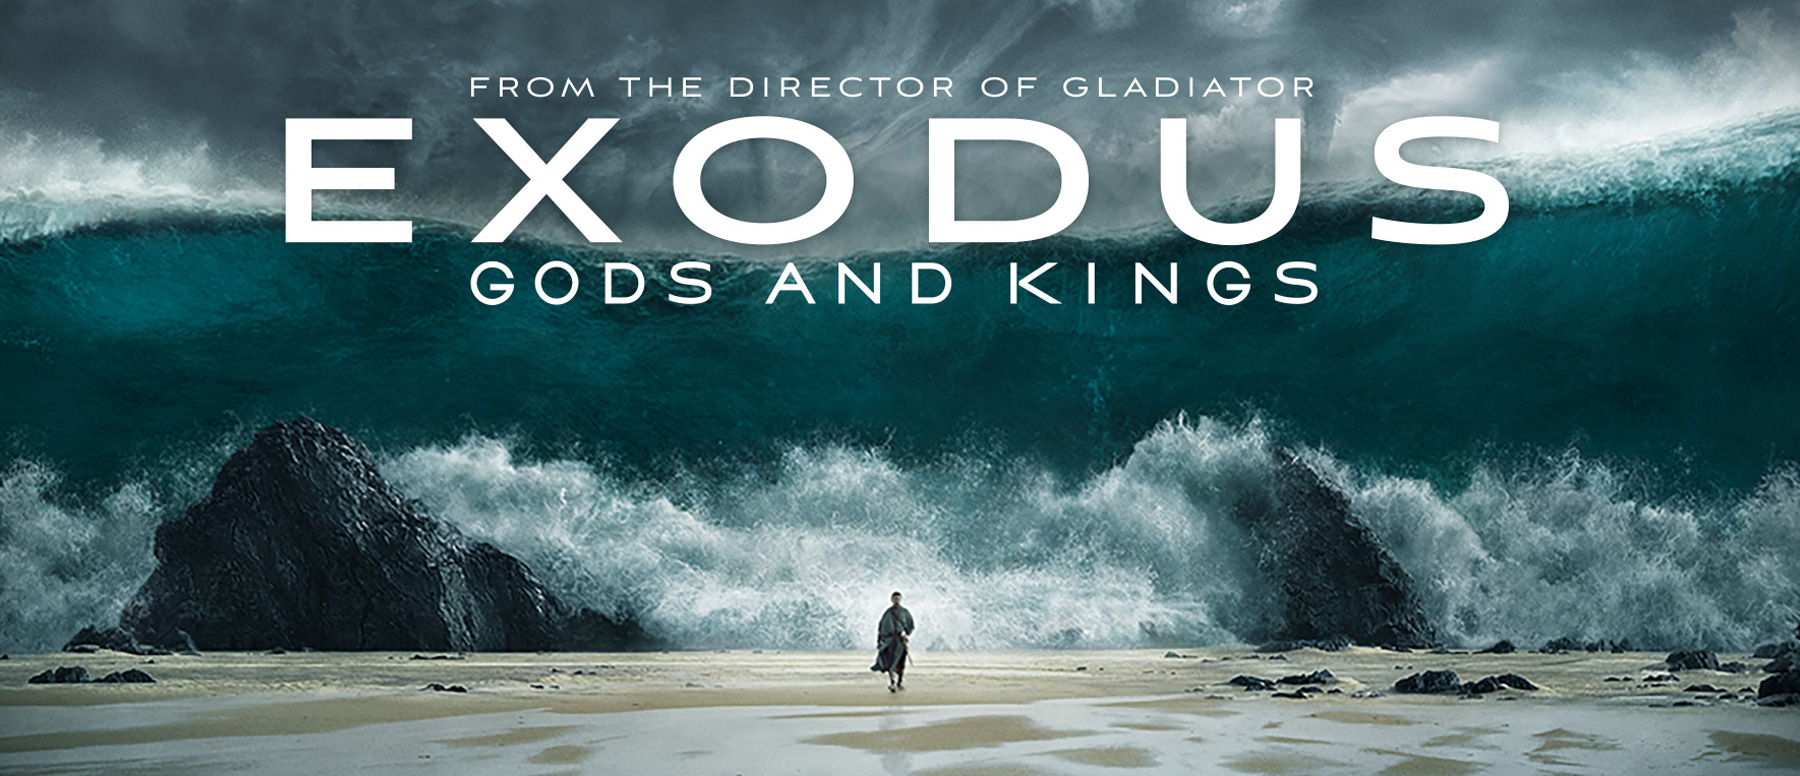 Exodus Gods And Kings 2014 Ridley Scott S Epic Biblical Film Cinecelluloid